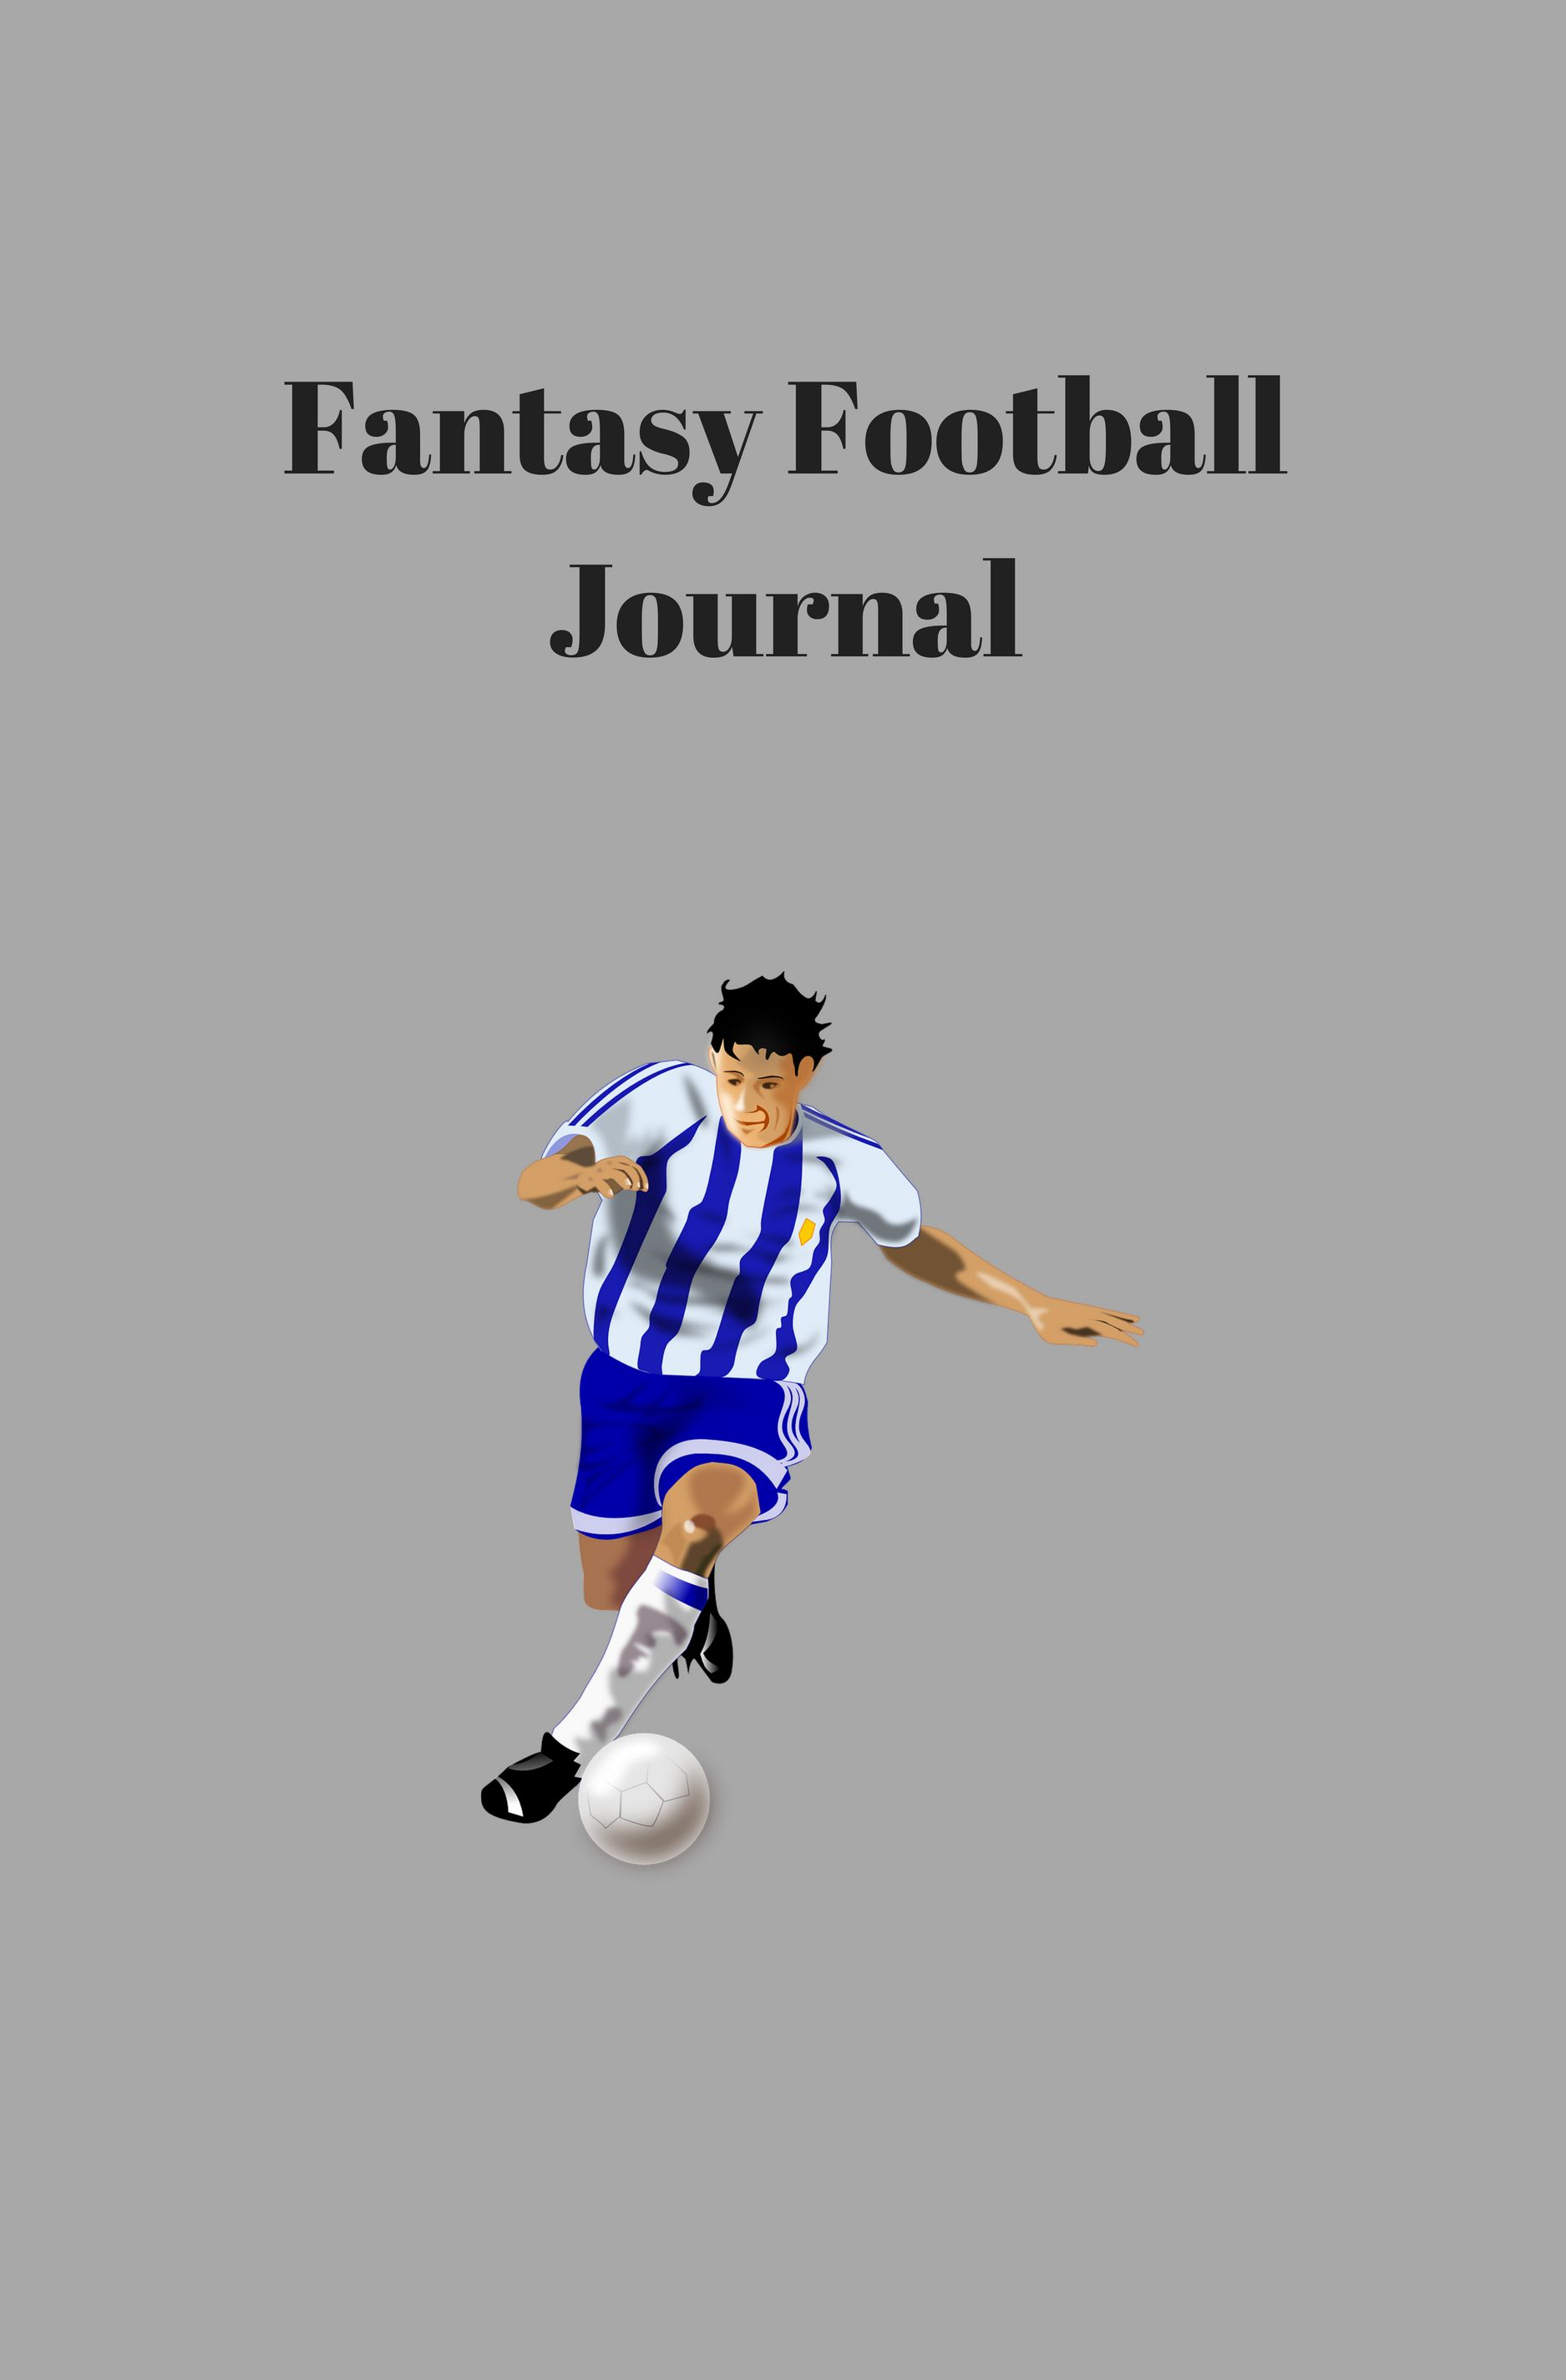 Pin by Soccer Football Fan on Fantasy Football Journals